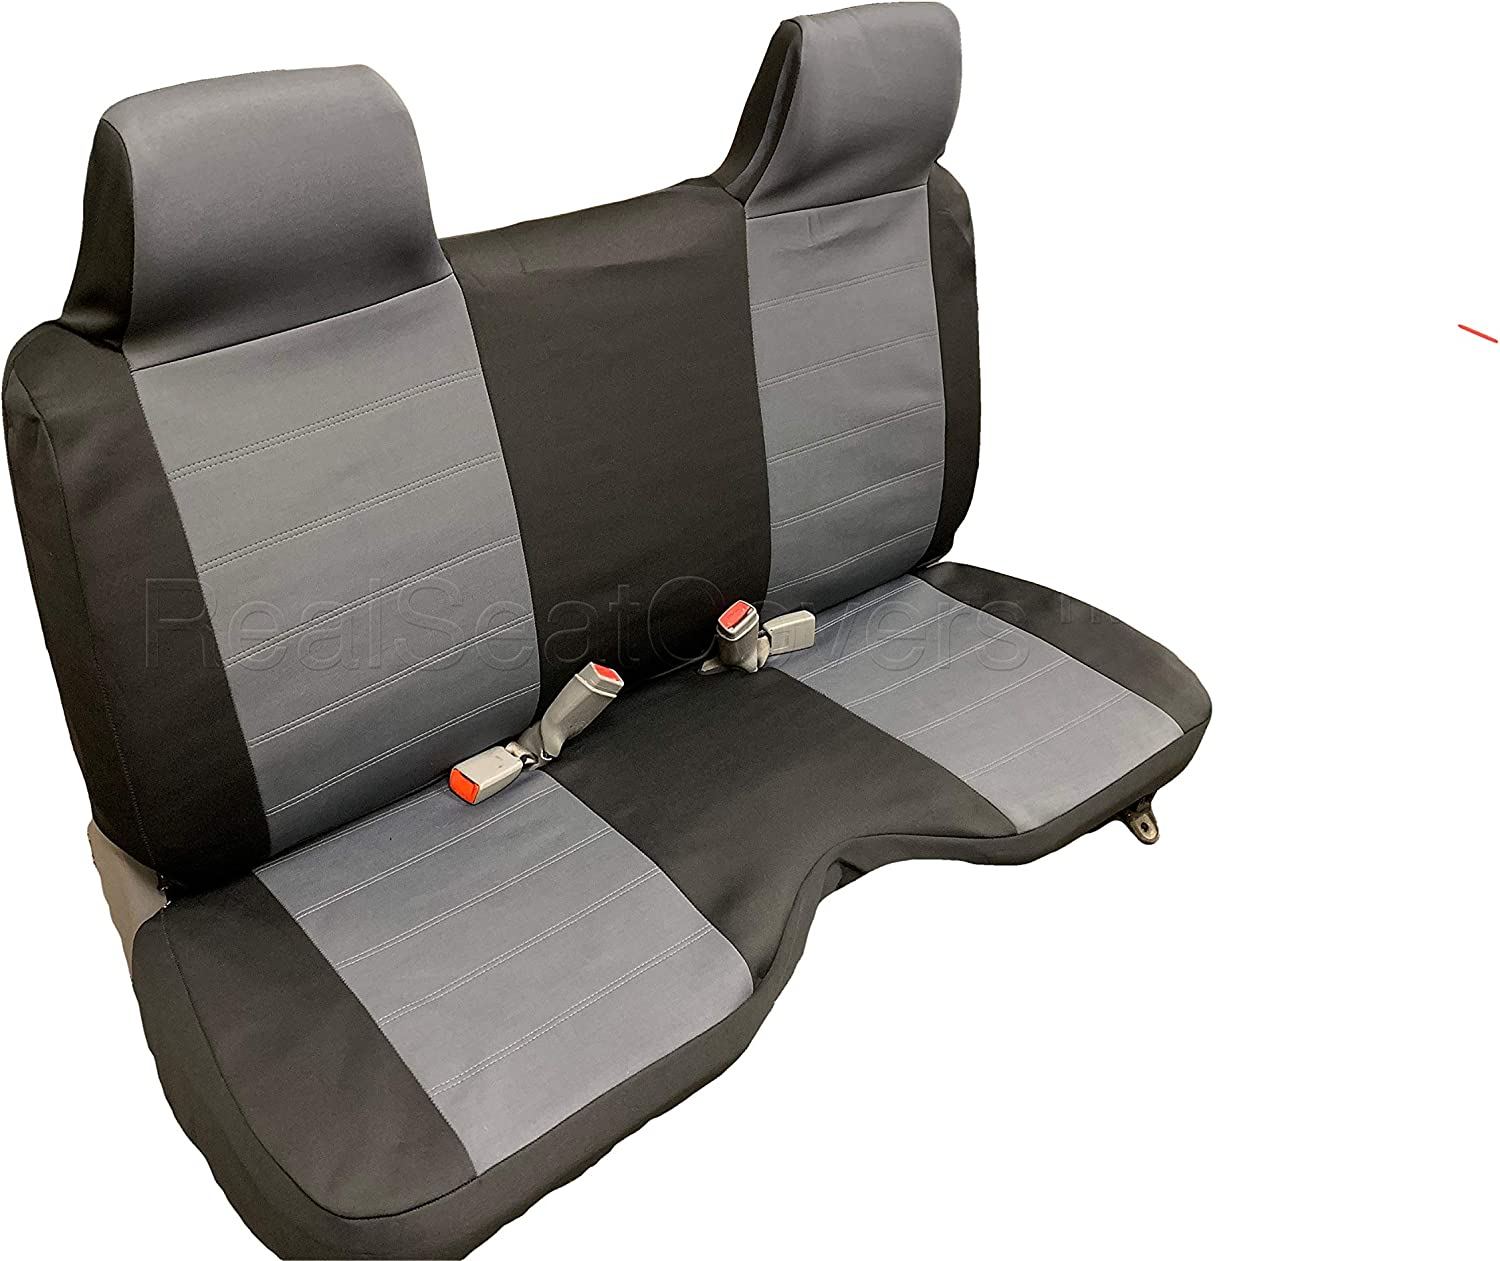 Gray, Grey RealSeatCovers for Front Bench Thick A25 Molded Headrest Small Notched Cushion Seat Cover for Toyota Pickup 1990-1995